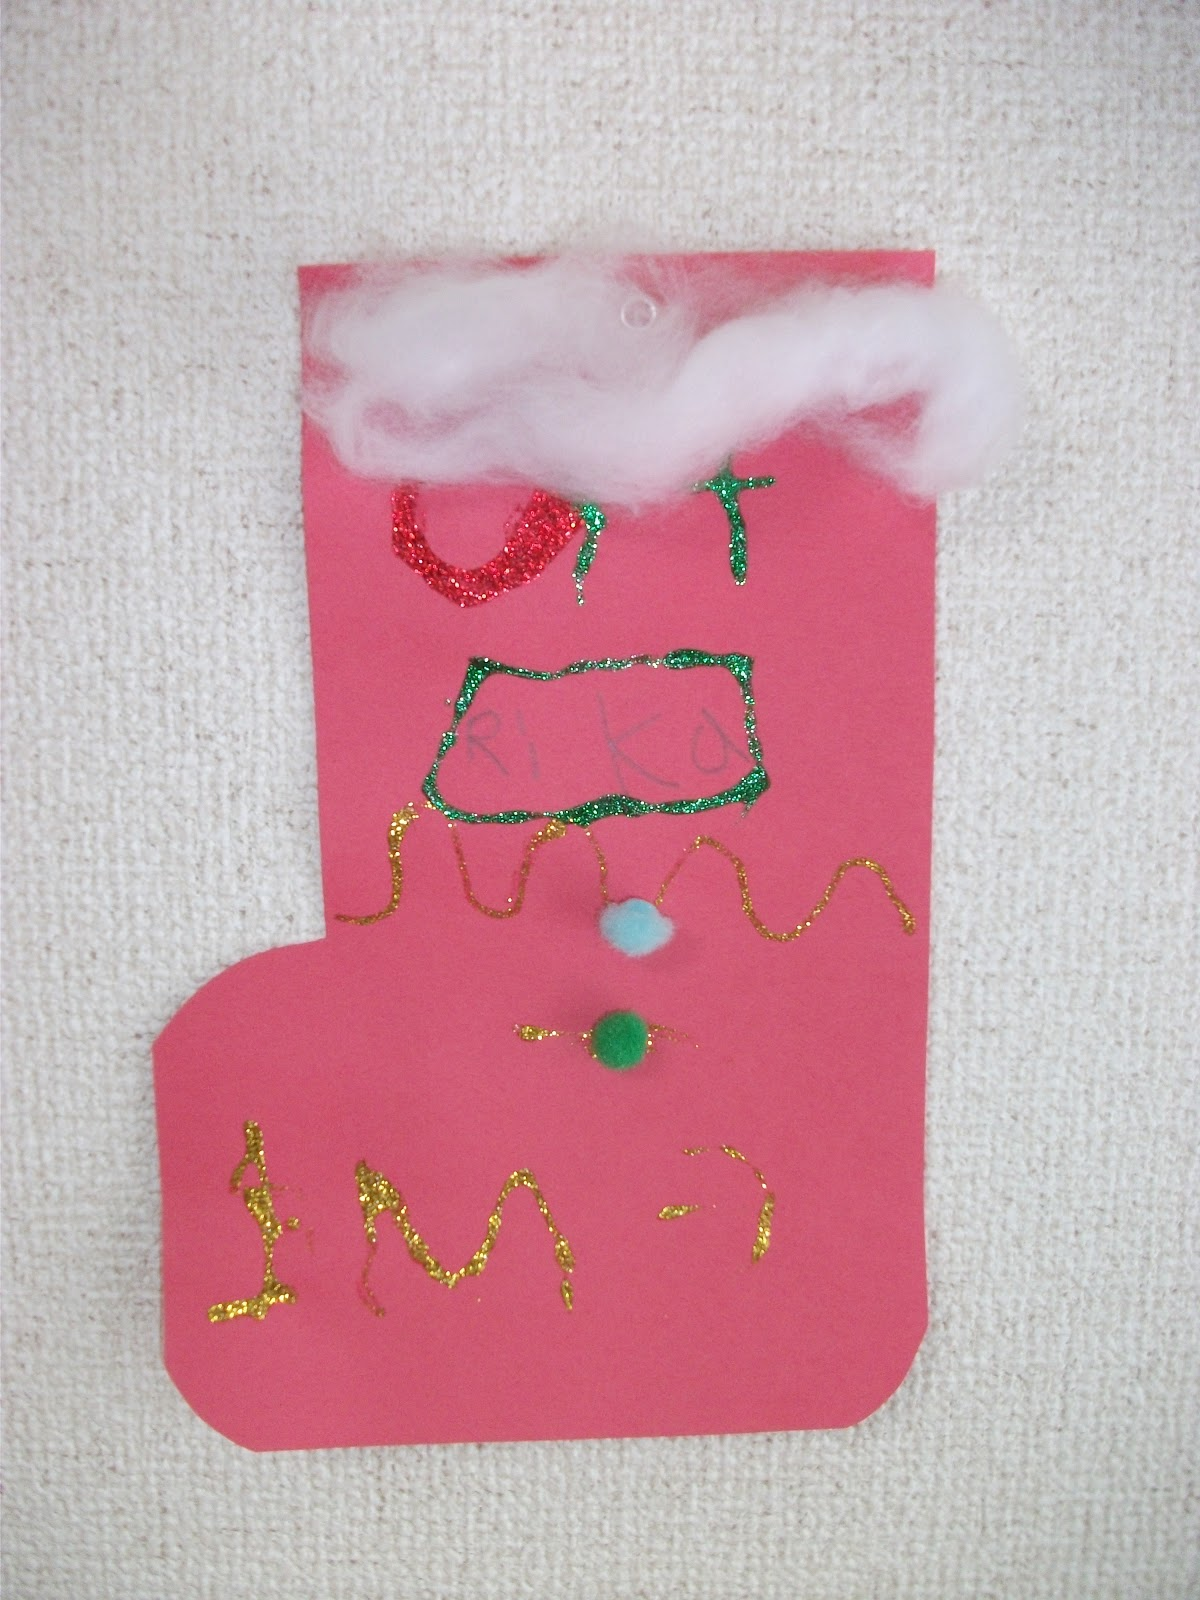 Simple Christmas Craft For Preschoolers : Preschool crafts for kids easy christmas stocking paper